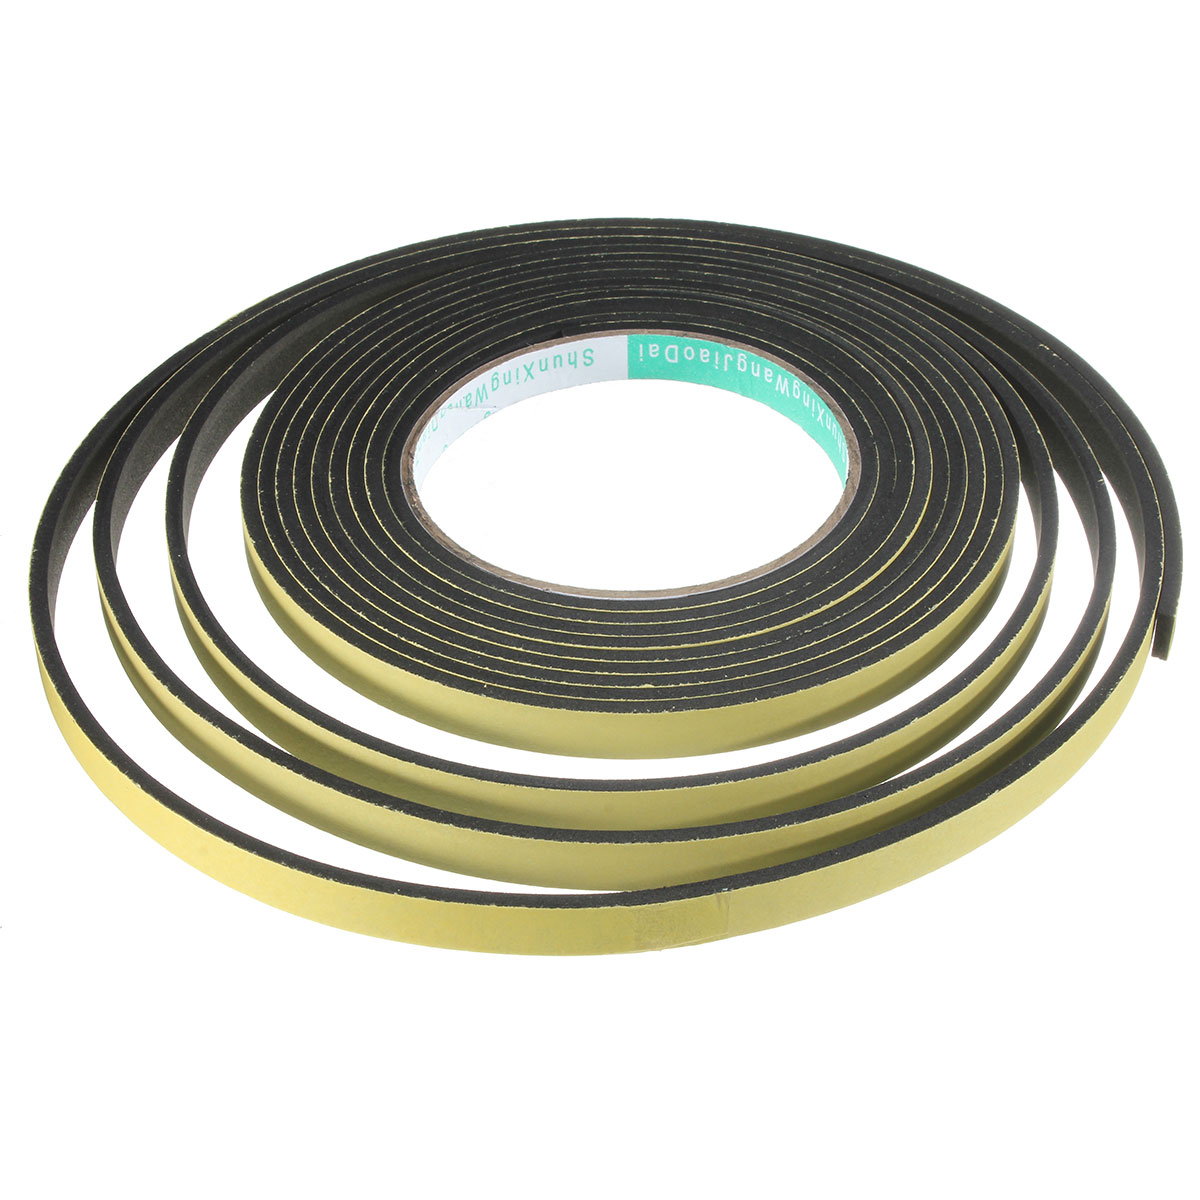 Newest 5m x 3x10mm Single Sided Adhesive Waterproof Weather Stripping Foam Sponge Rubber Strip Tape Door Seal Hot Sale 1pcs single sided self adhesive shockproof sponge foam tape 2m length 6mm x 80mm